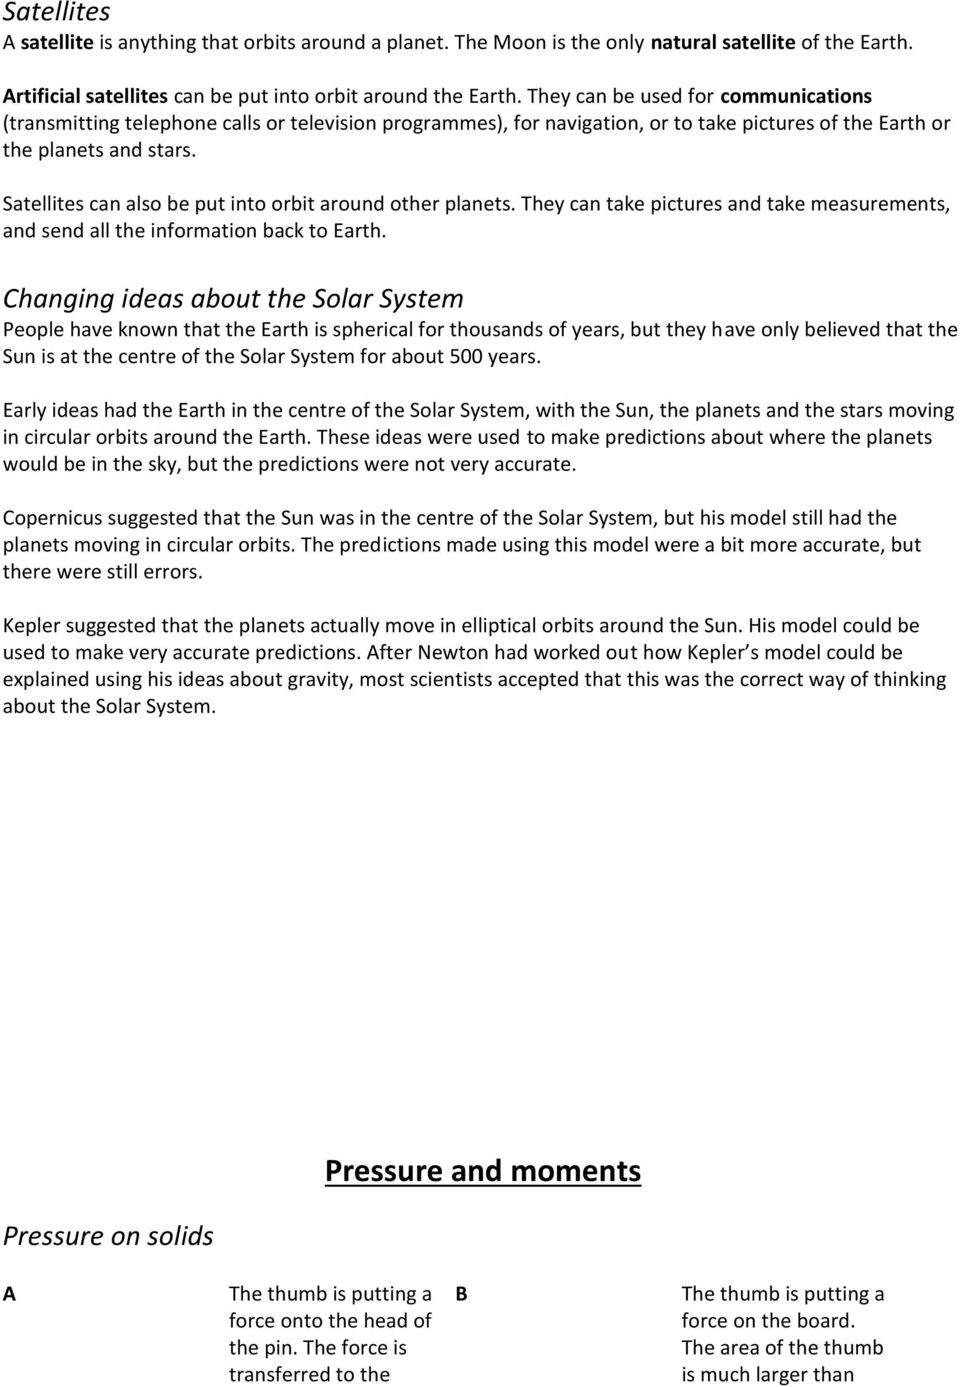 Ks3 Revision Booklet Physics Pdf Grade Bitesize Generation Of Electricity Page 3 Satellites Can Also Be Put Into Orbit Around Other Planets They Take Pictures And